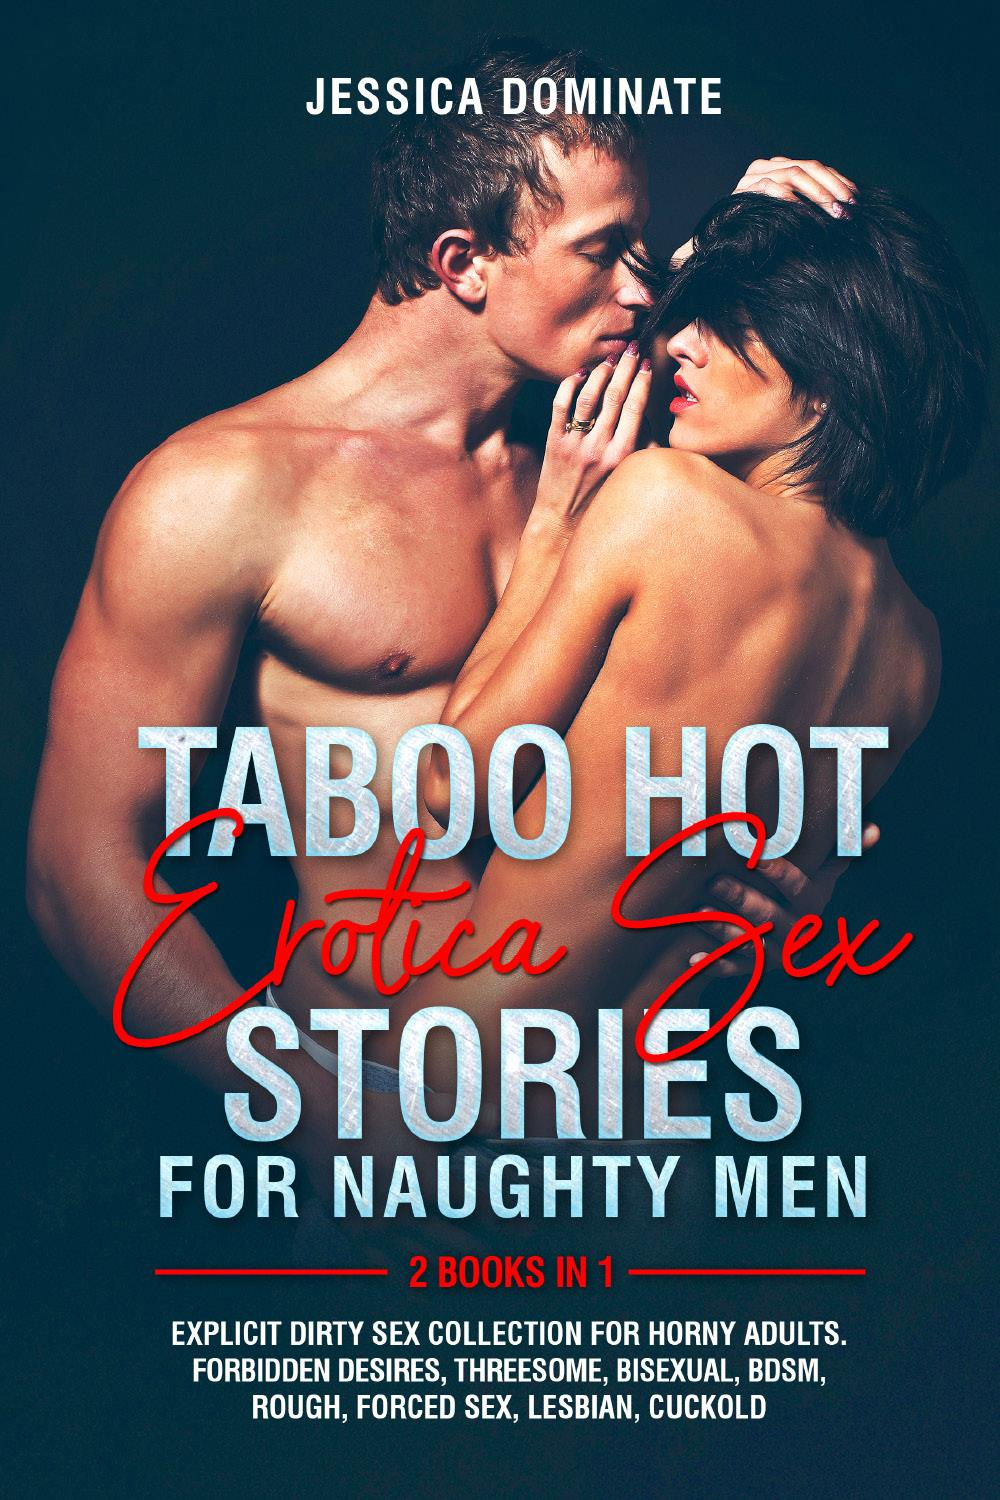 Taboo Hot Erotica Sex Stories for Naughty Men (2 Books in 1). Explicit Dirty Sex Collection for Horny Adults. Forbidden Desires, Threesome, Bisexual, BDSM, Rough, Forced Sex, Lesbian, Cuckold